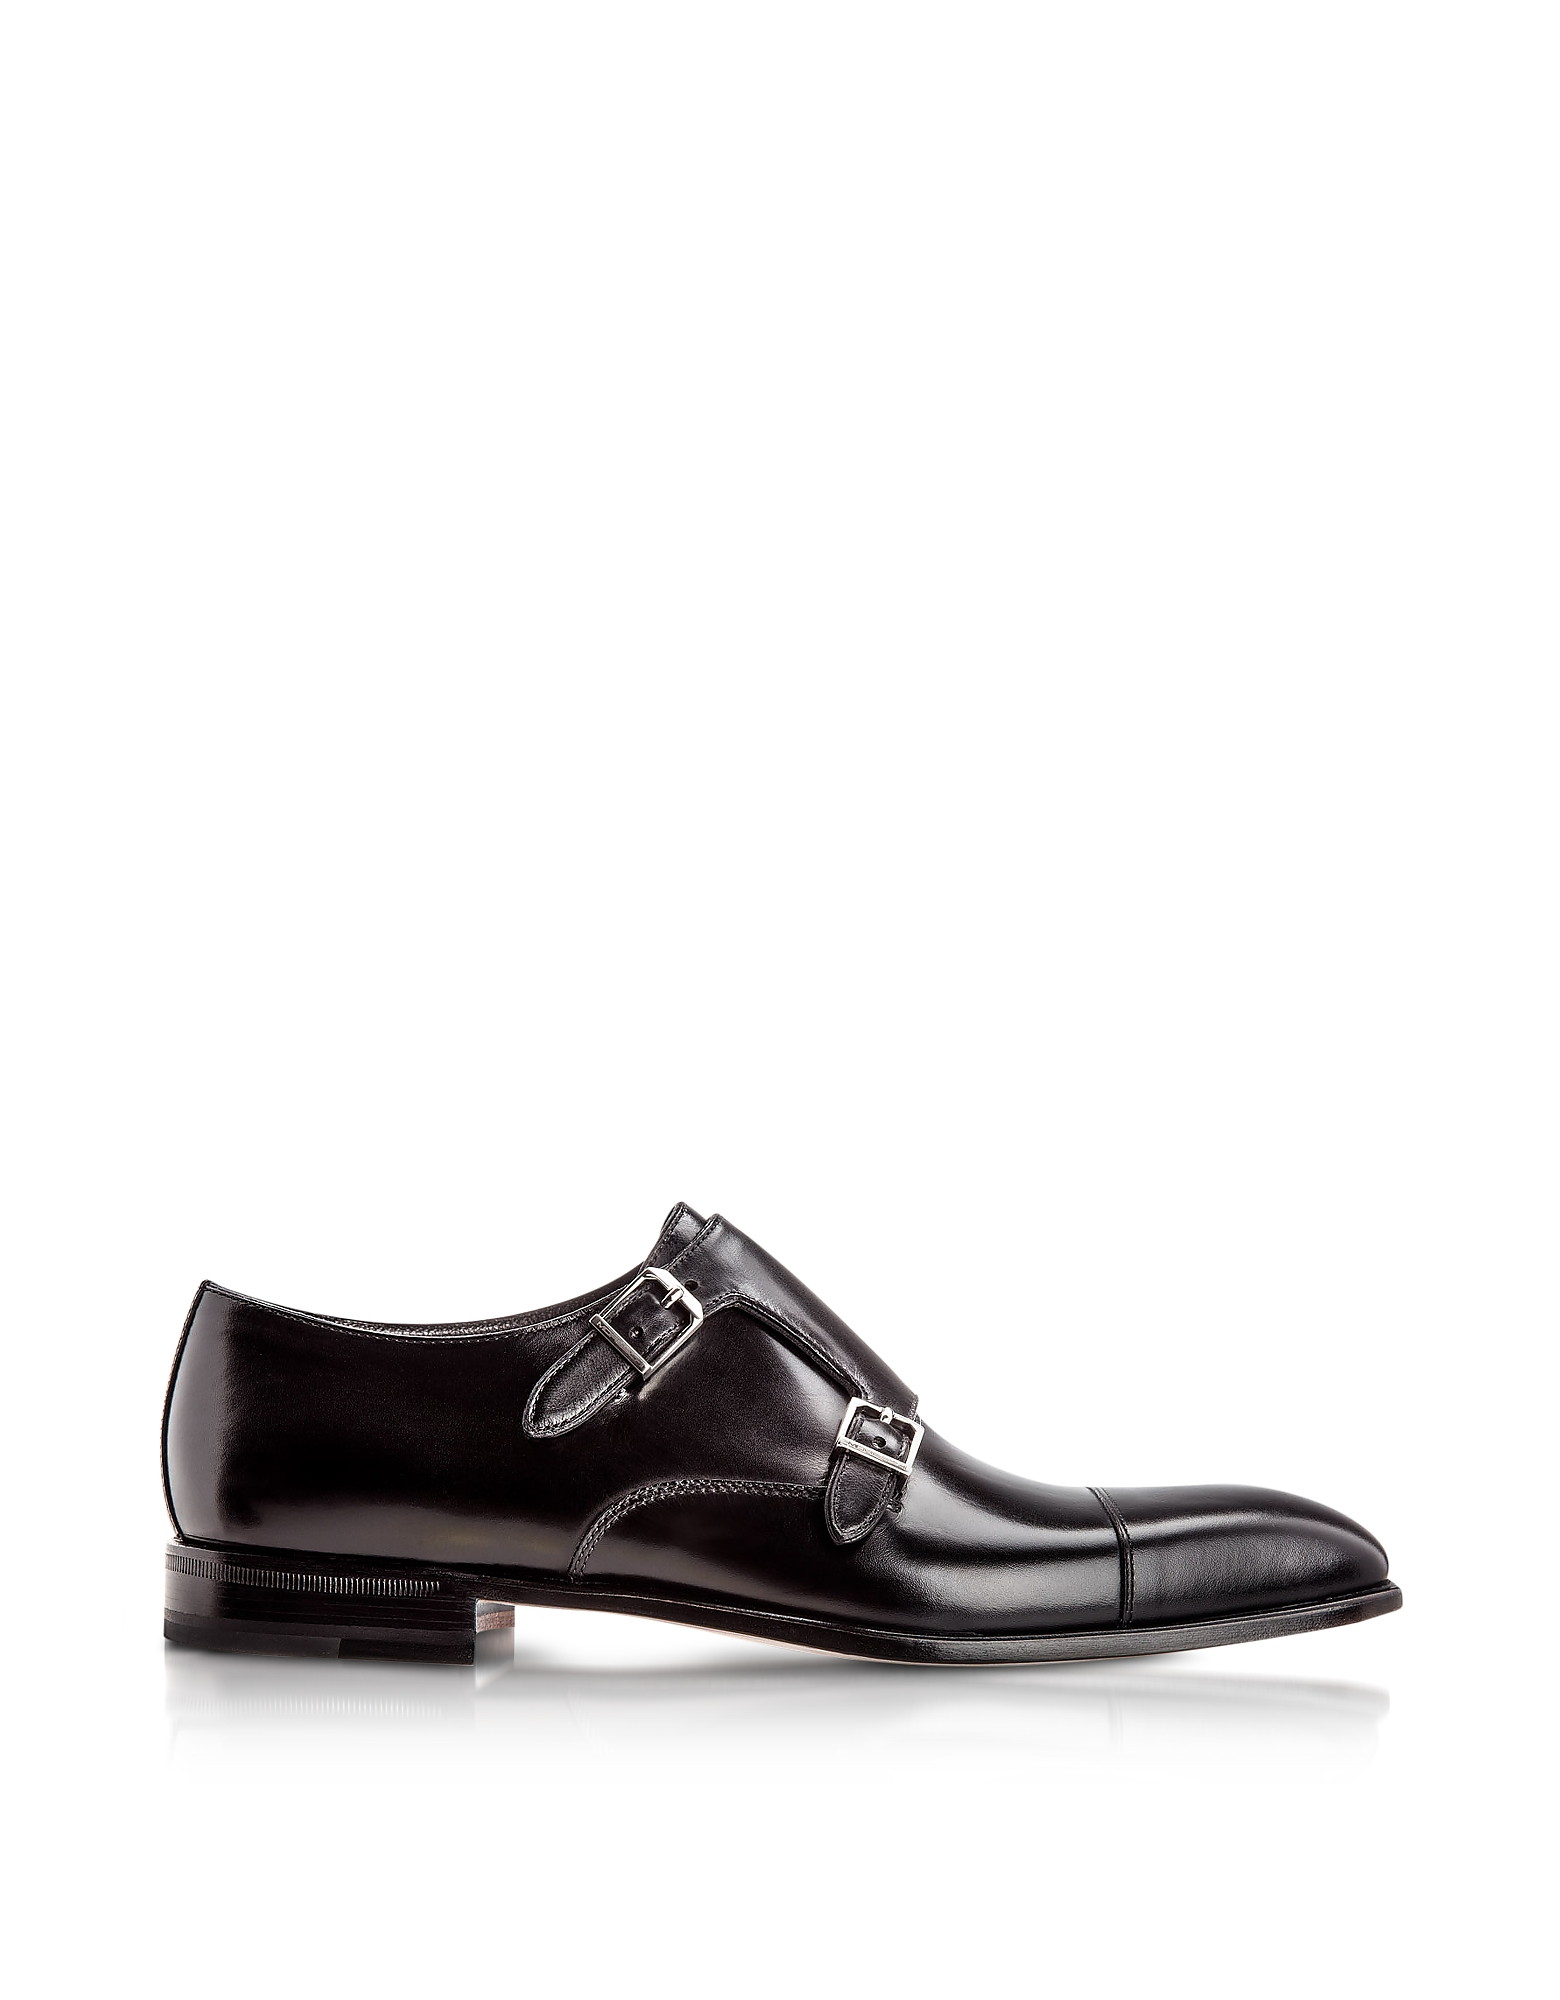 Moreschi Designer Shoes, Toronto Black Calfskin Monk Shoes